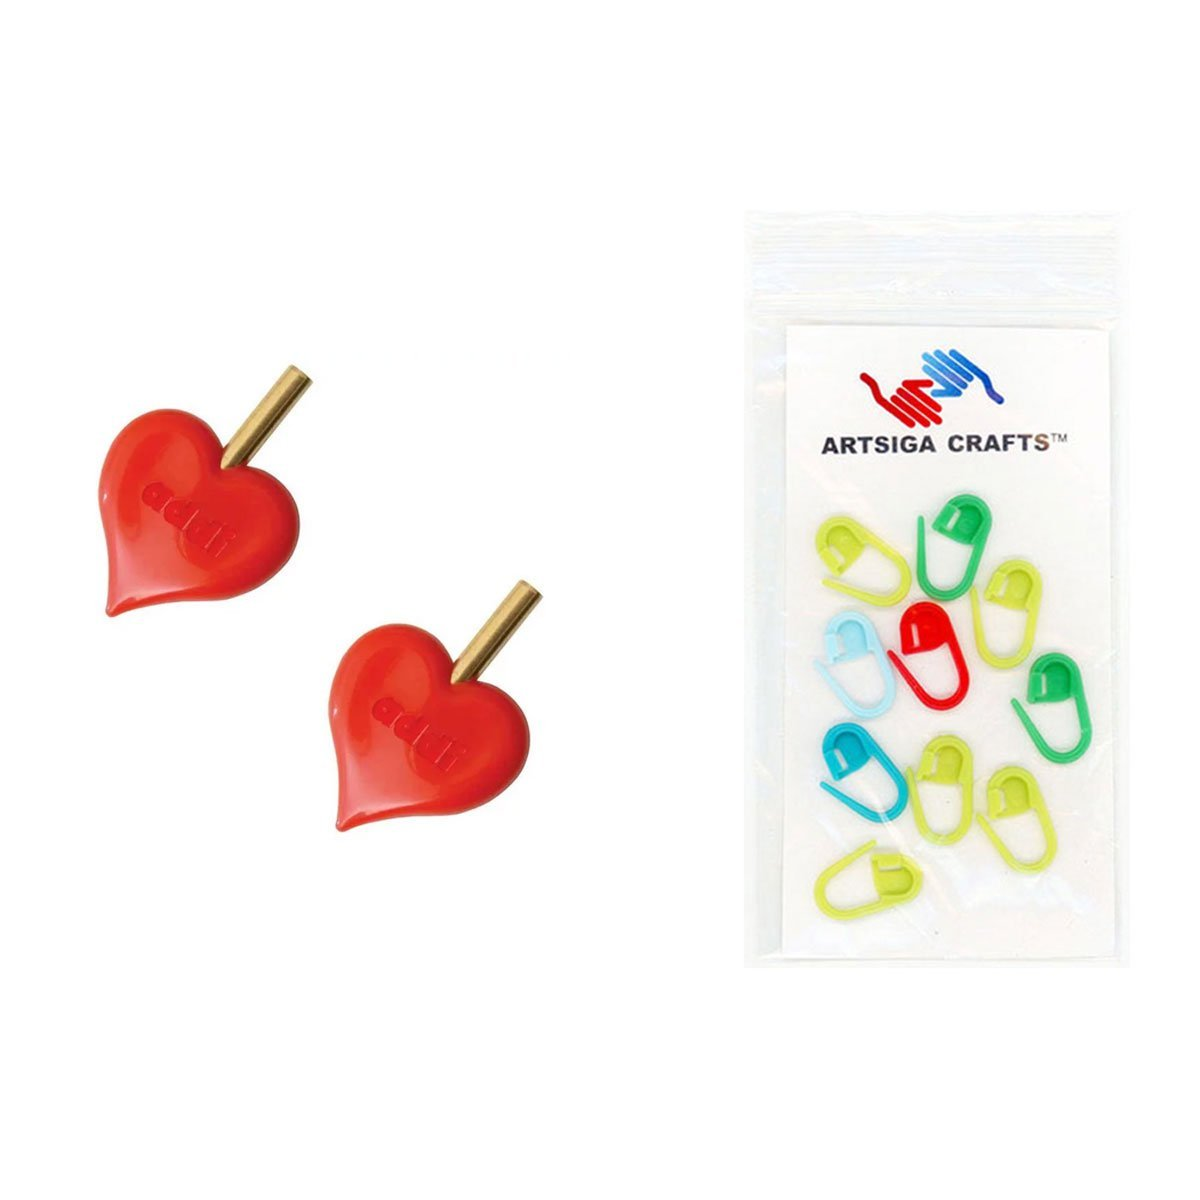 addi Knitting Needles Click Interchangeable Turbo HeartStopper End-Caps Bundle with 10 Artsiga Crafts Stitch Markers